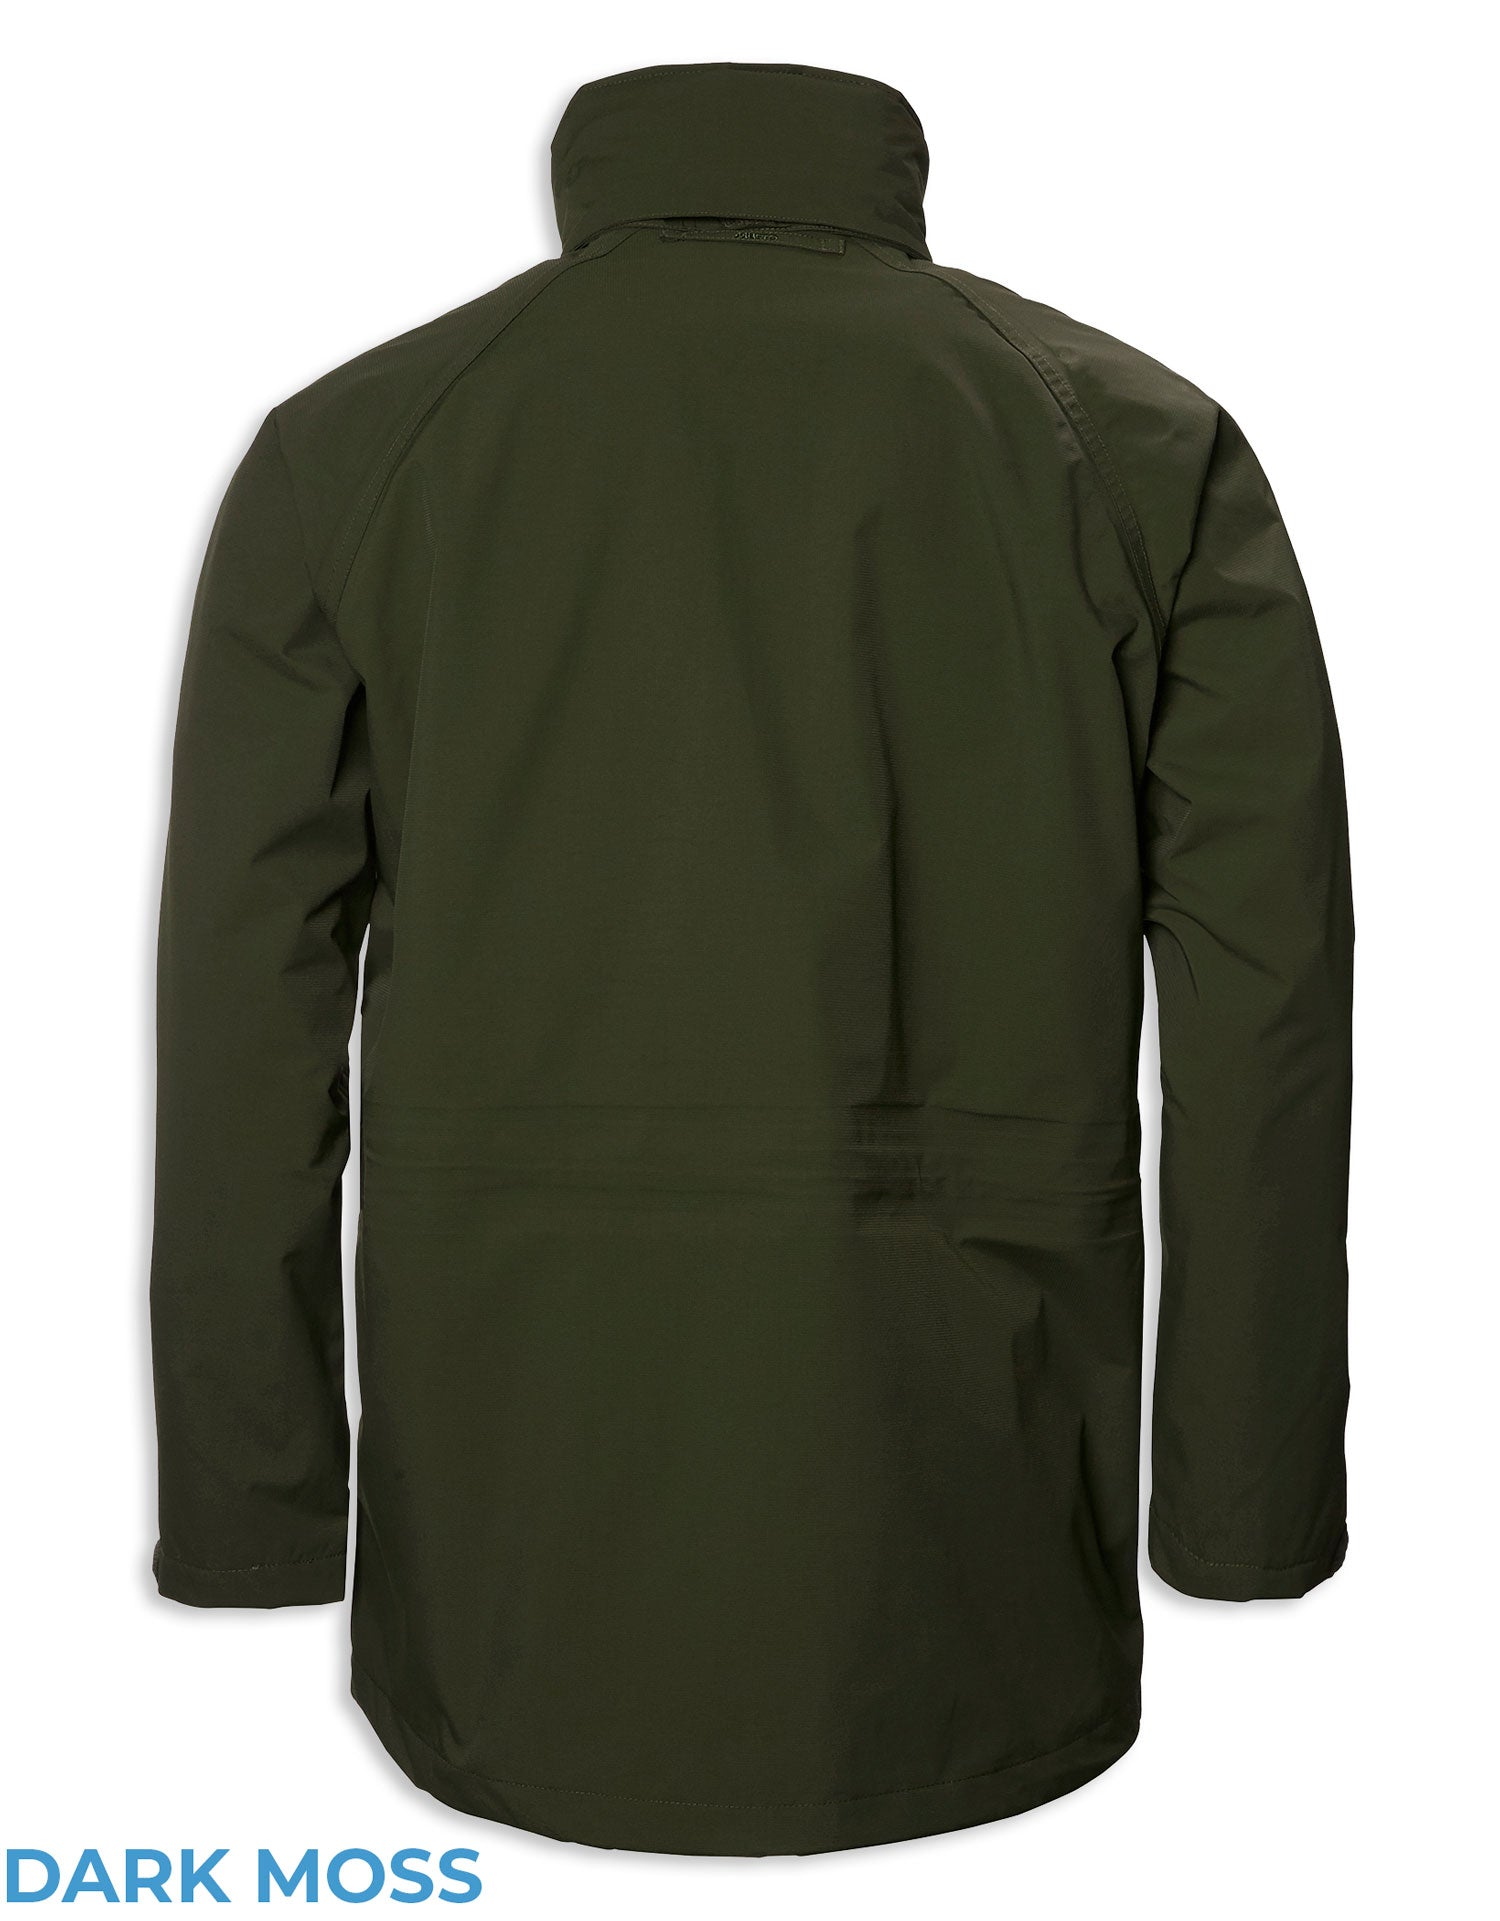 Back View Musto Fenland BR2 Packaway Jacket